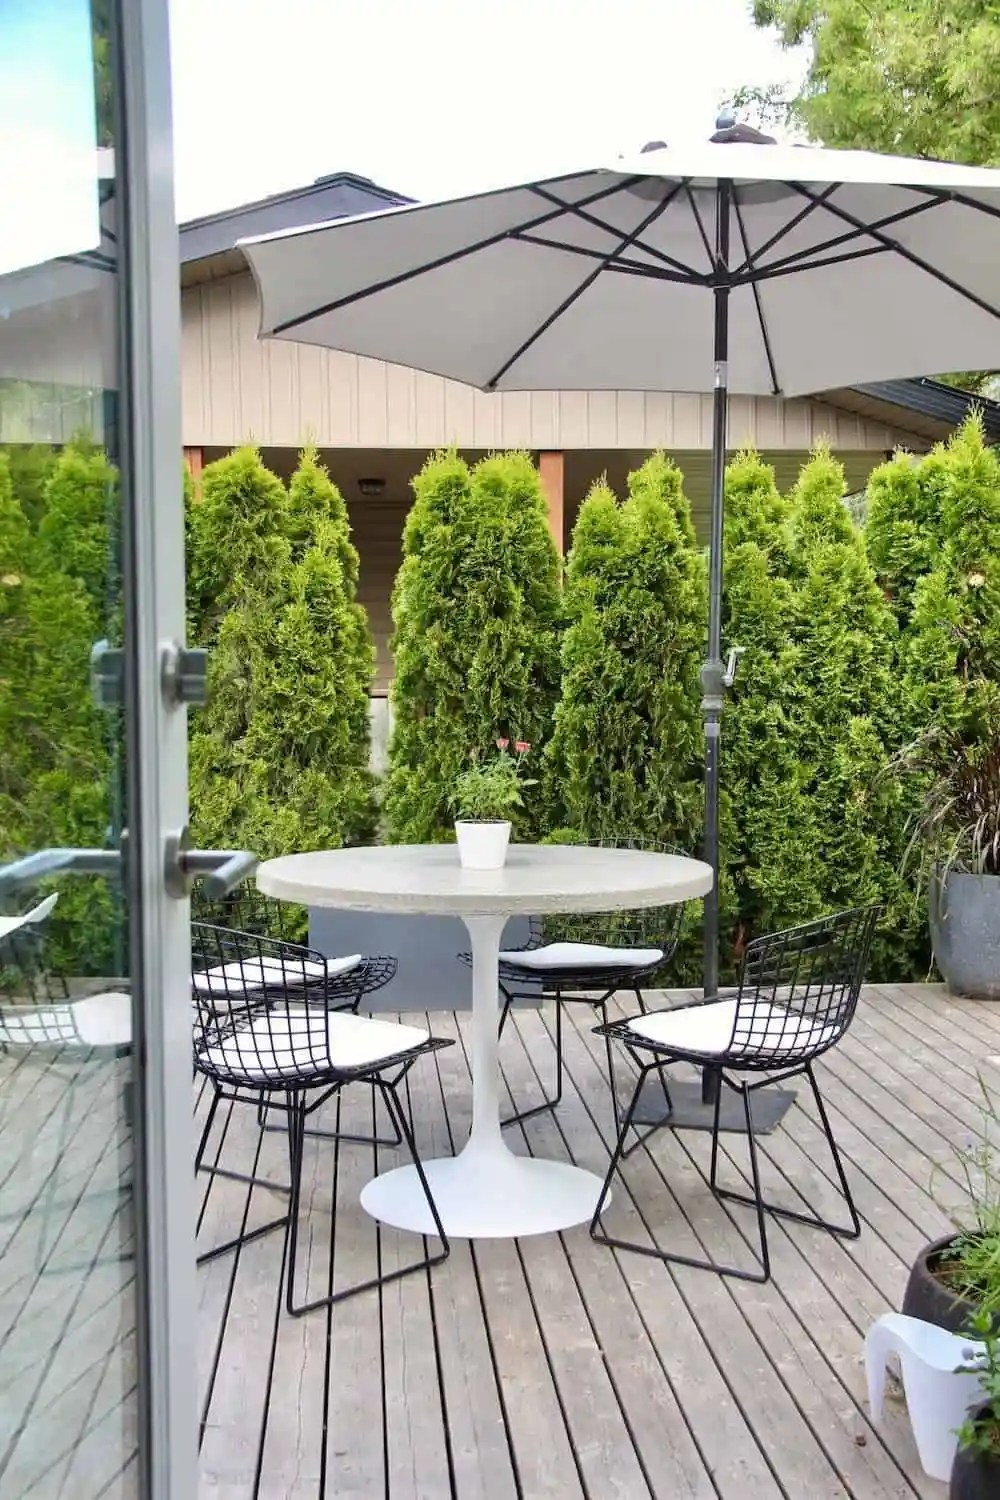 modern patio furniture on grey wooden deck with glass door and umbrella - Concrete Dining Table - A DIY Round Dining Table For Outdoors (or